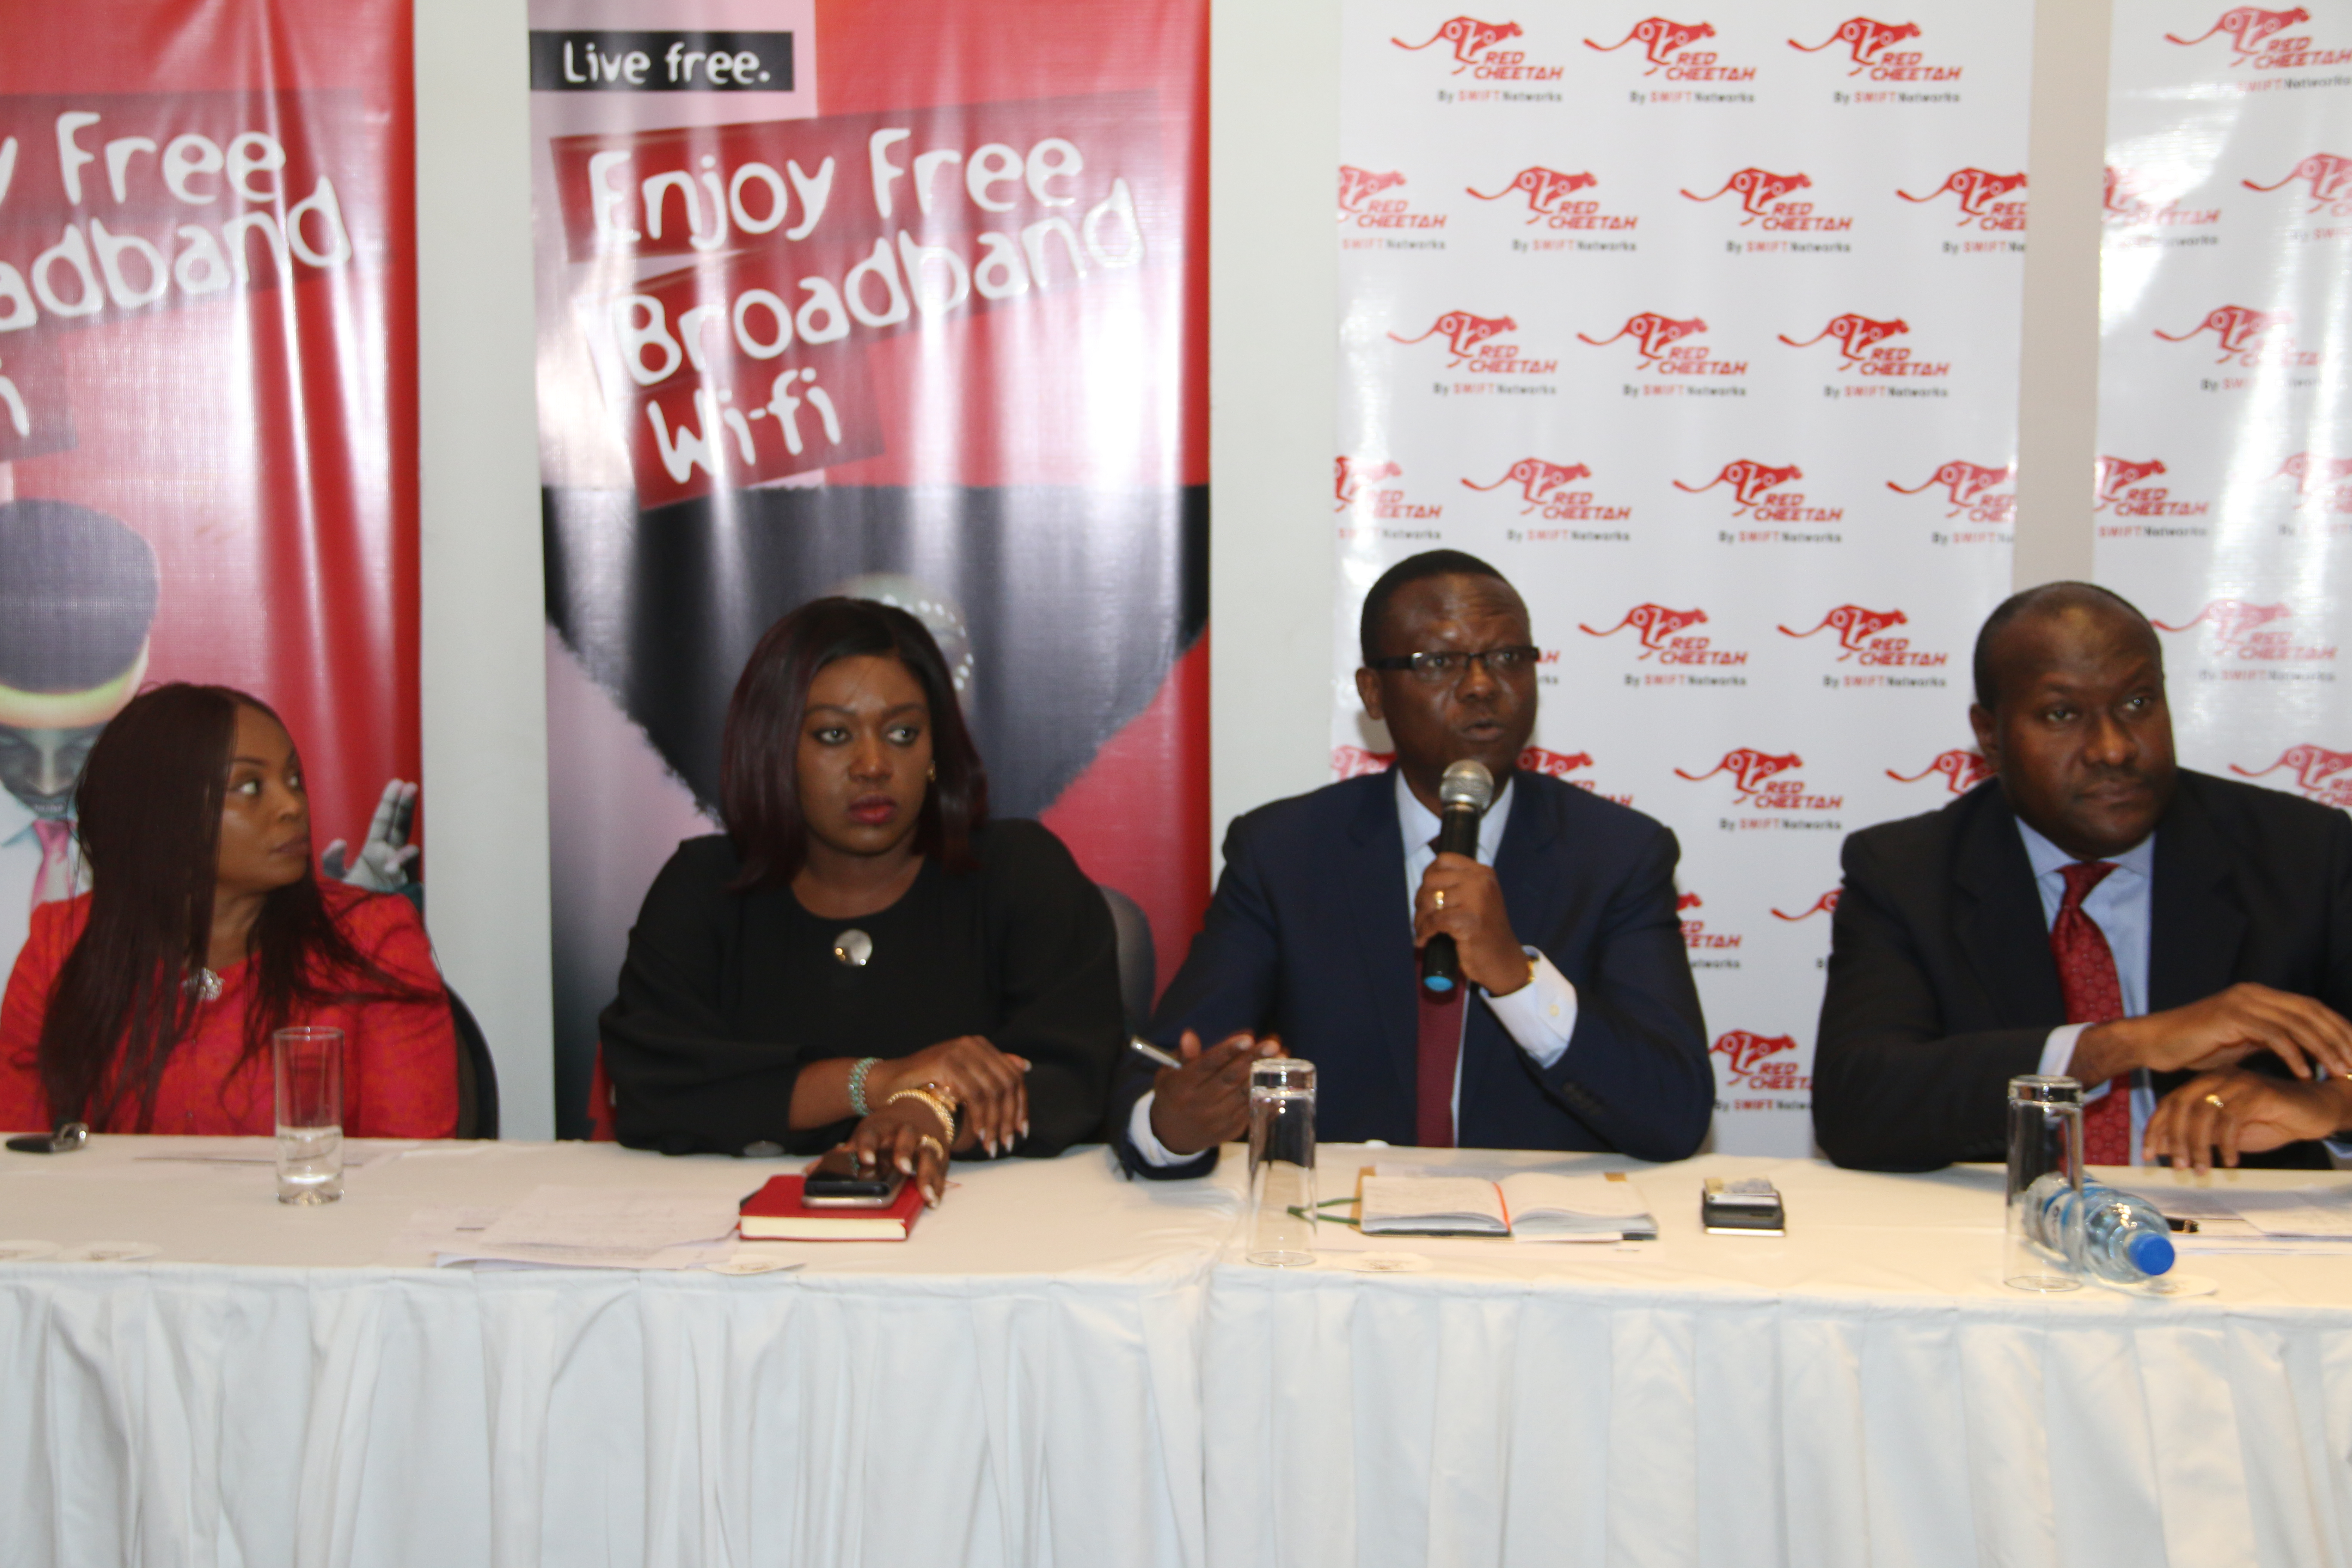 SWIFT NETWORKS LAUNCHES FREE BROADBAND WI-FI SERVICE IN LAGOS.